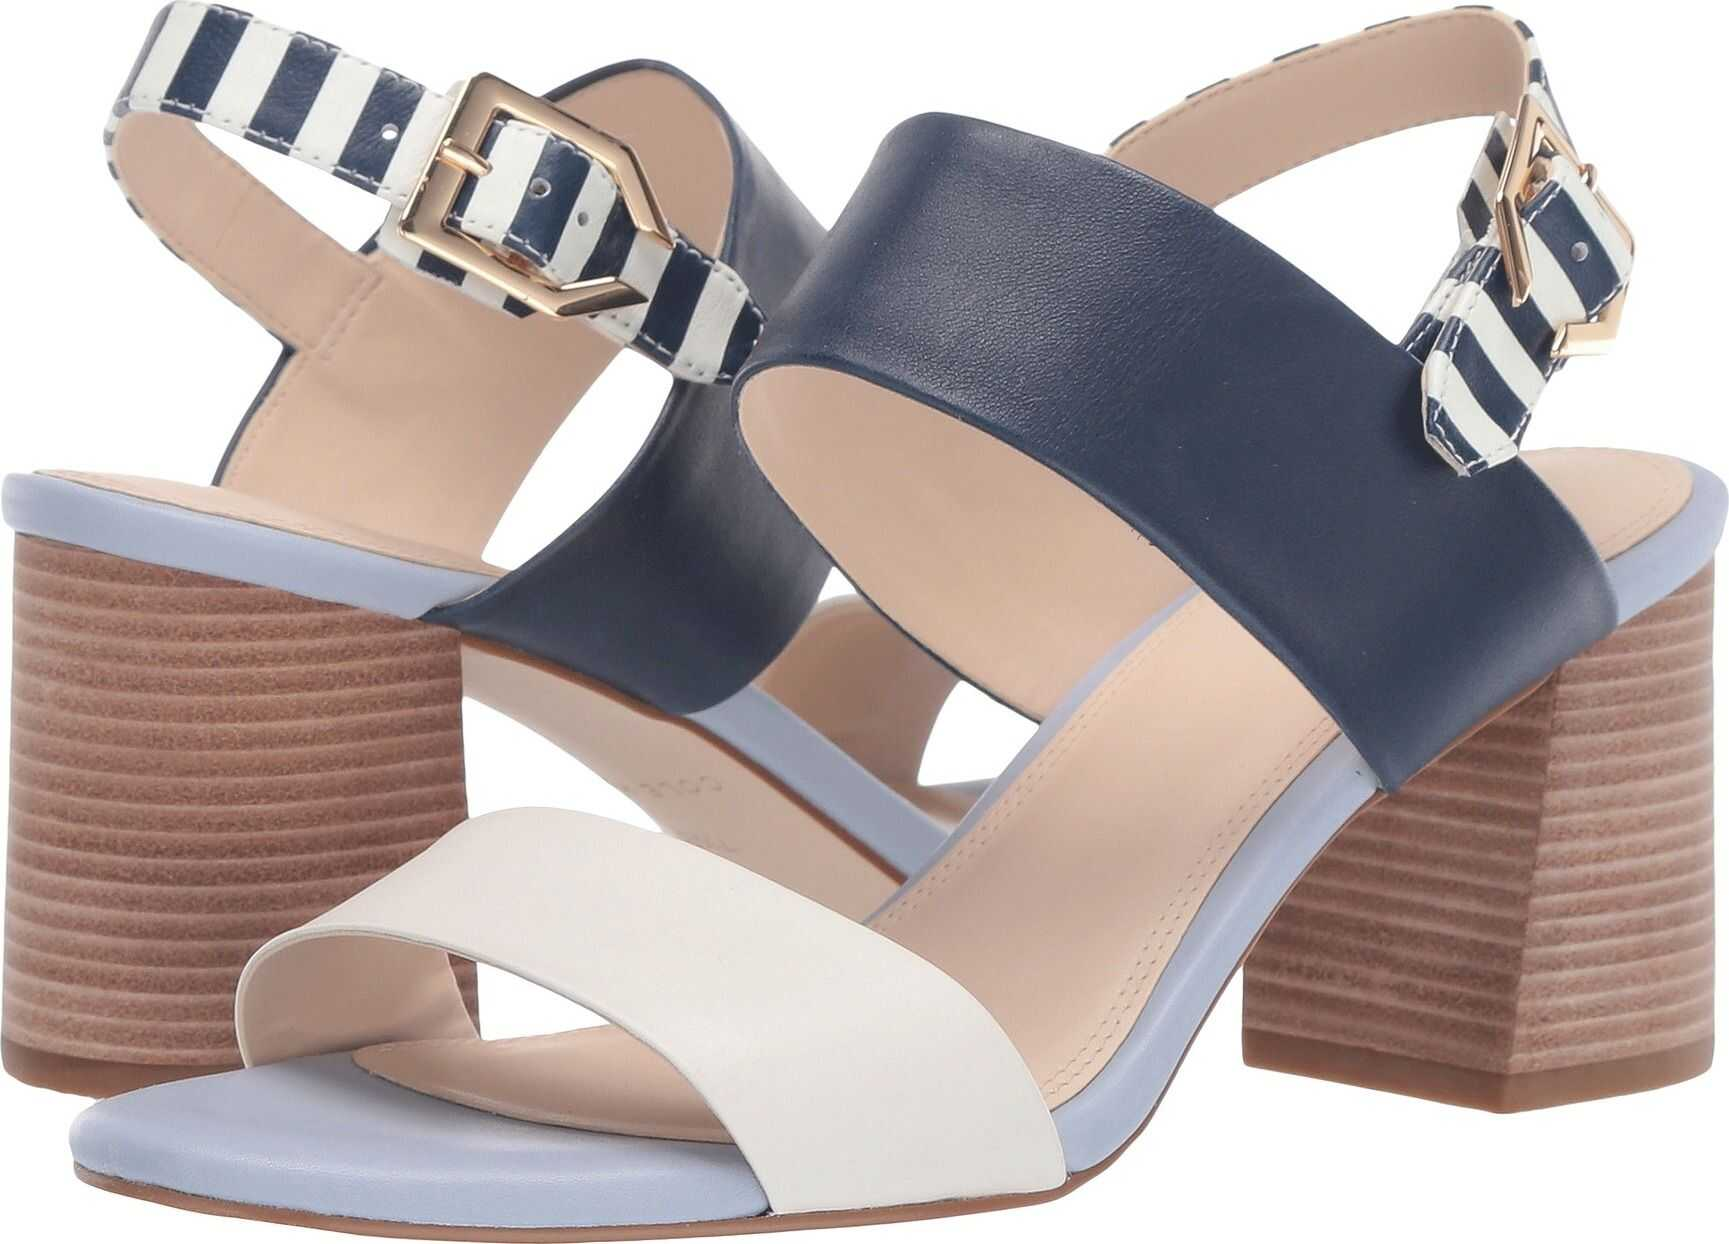 Cole Haan 65 mm G.OS Avani City Sandal Ivory/Zen Blue/Marine Blue/Marine Blue Stripe Print Leather